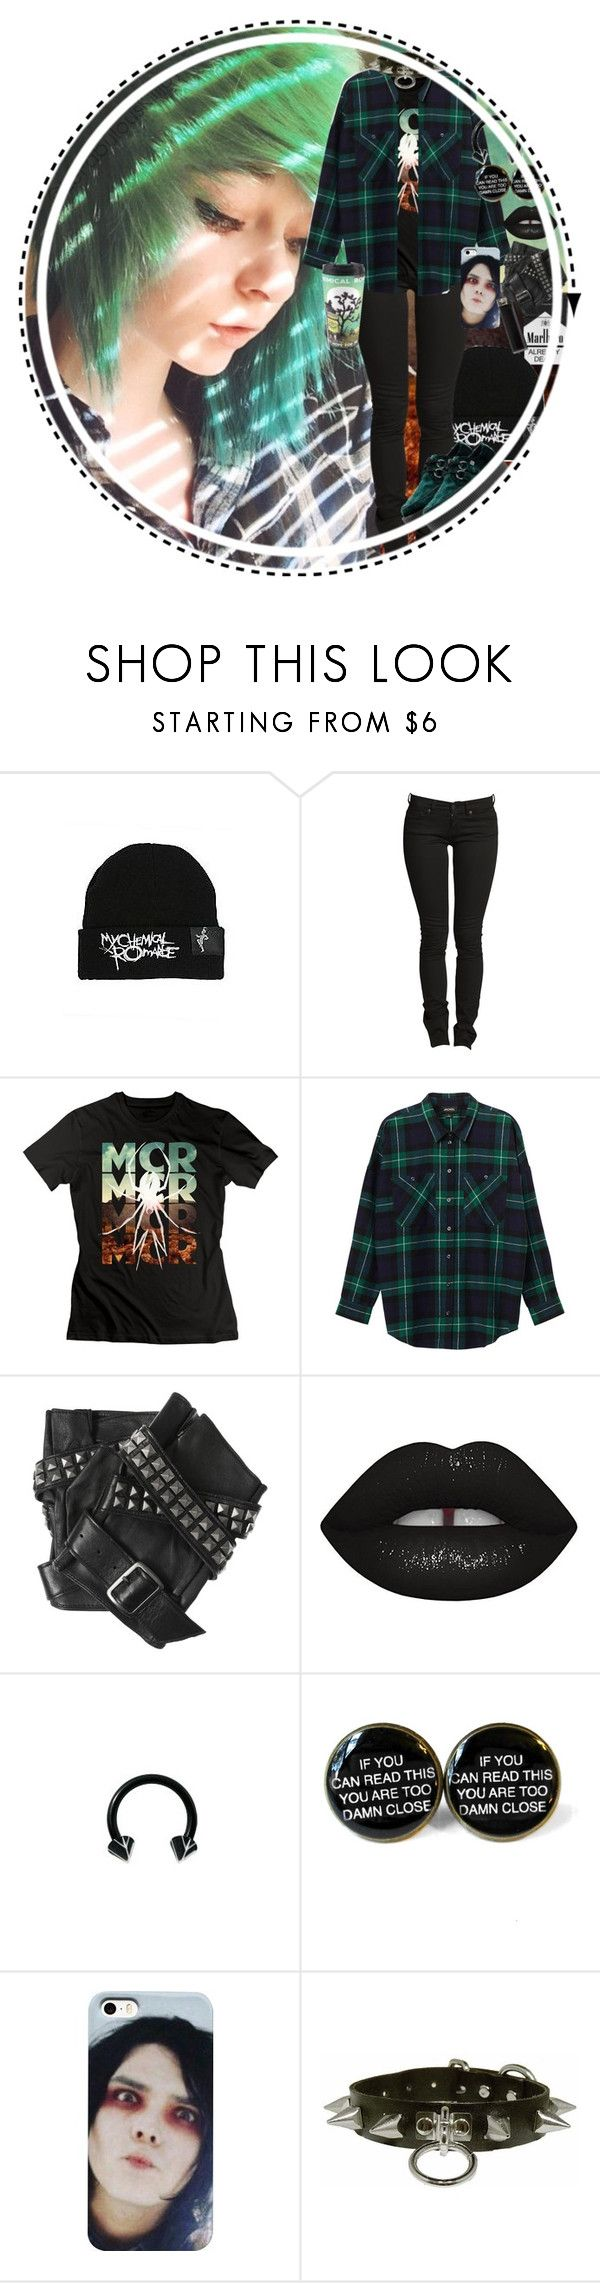 """Untitled #770"" by chemicalfallout249 on Polyvore featuring Hot Topic, Monki, Karl Lagerfeld, Lime Crime, T.U.K., black, emo, scene, bands and alternative"